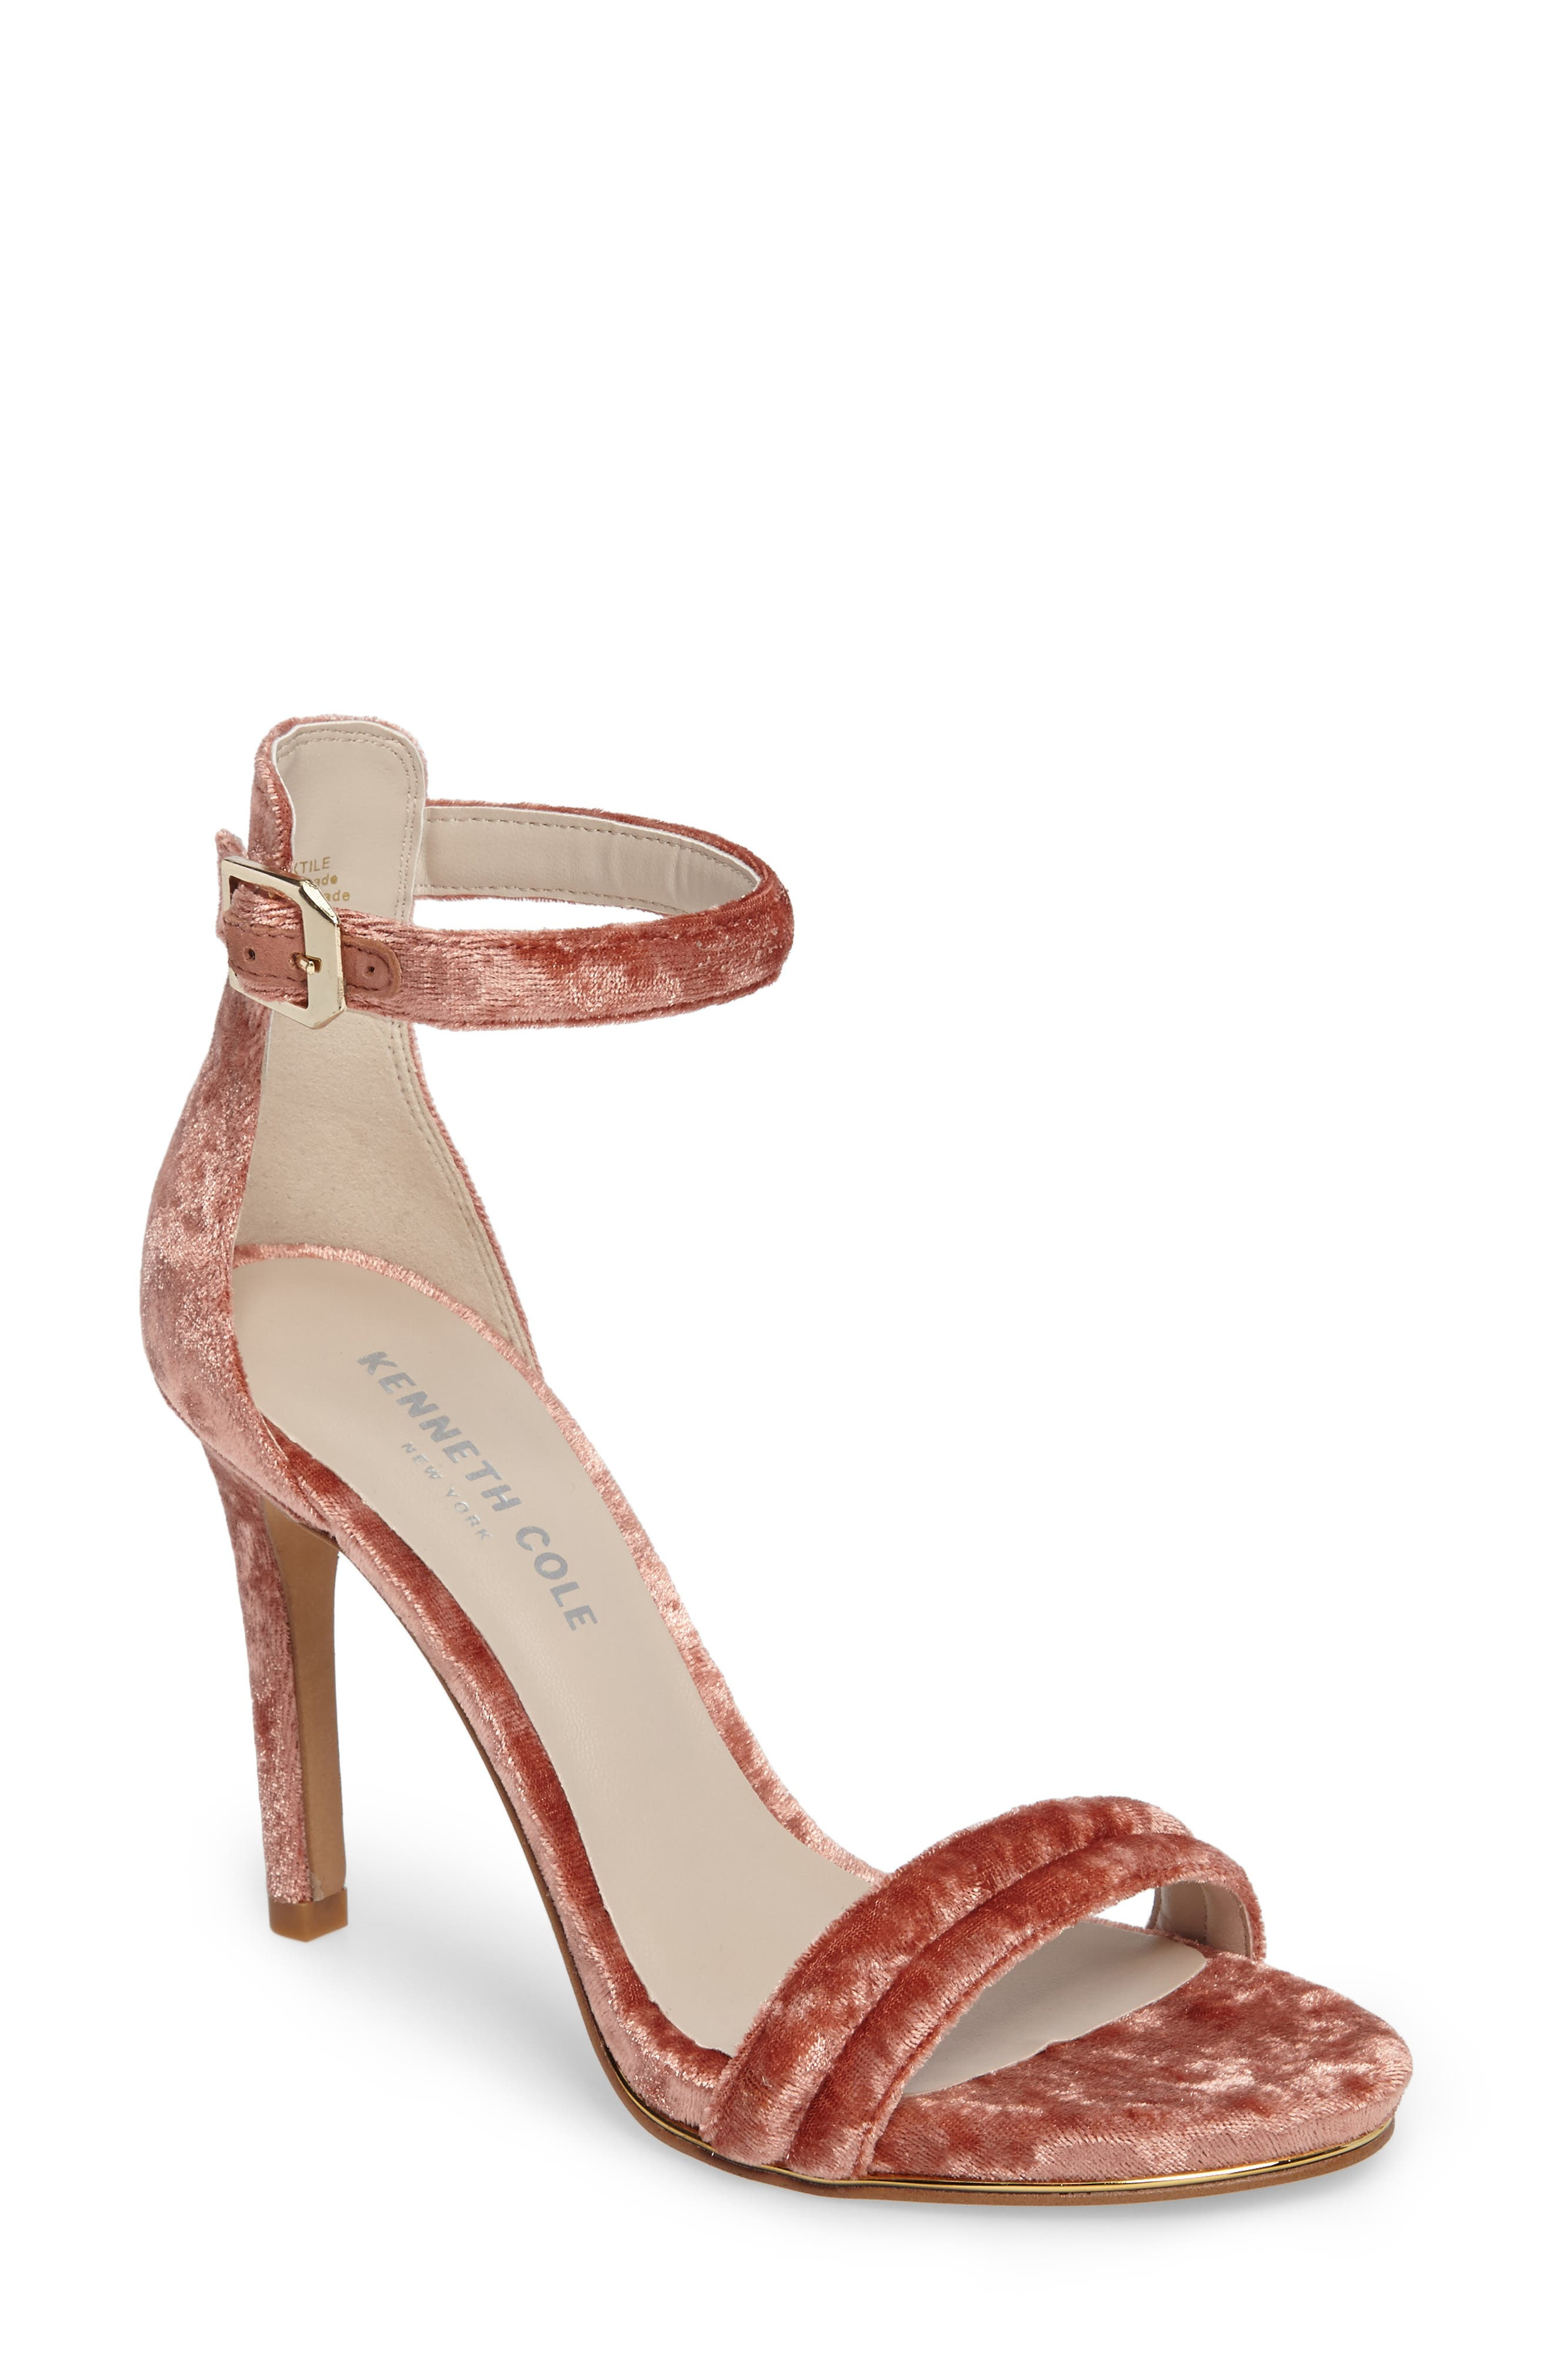 Alternate Image 1 Selected - Kenneth Cole New York 'Brooke' Sandal (Women)